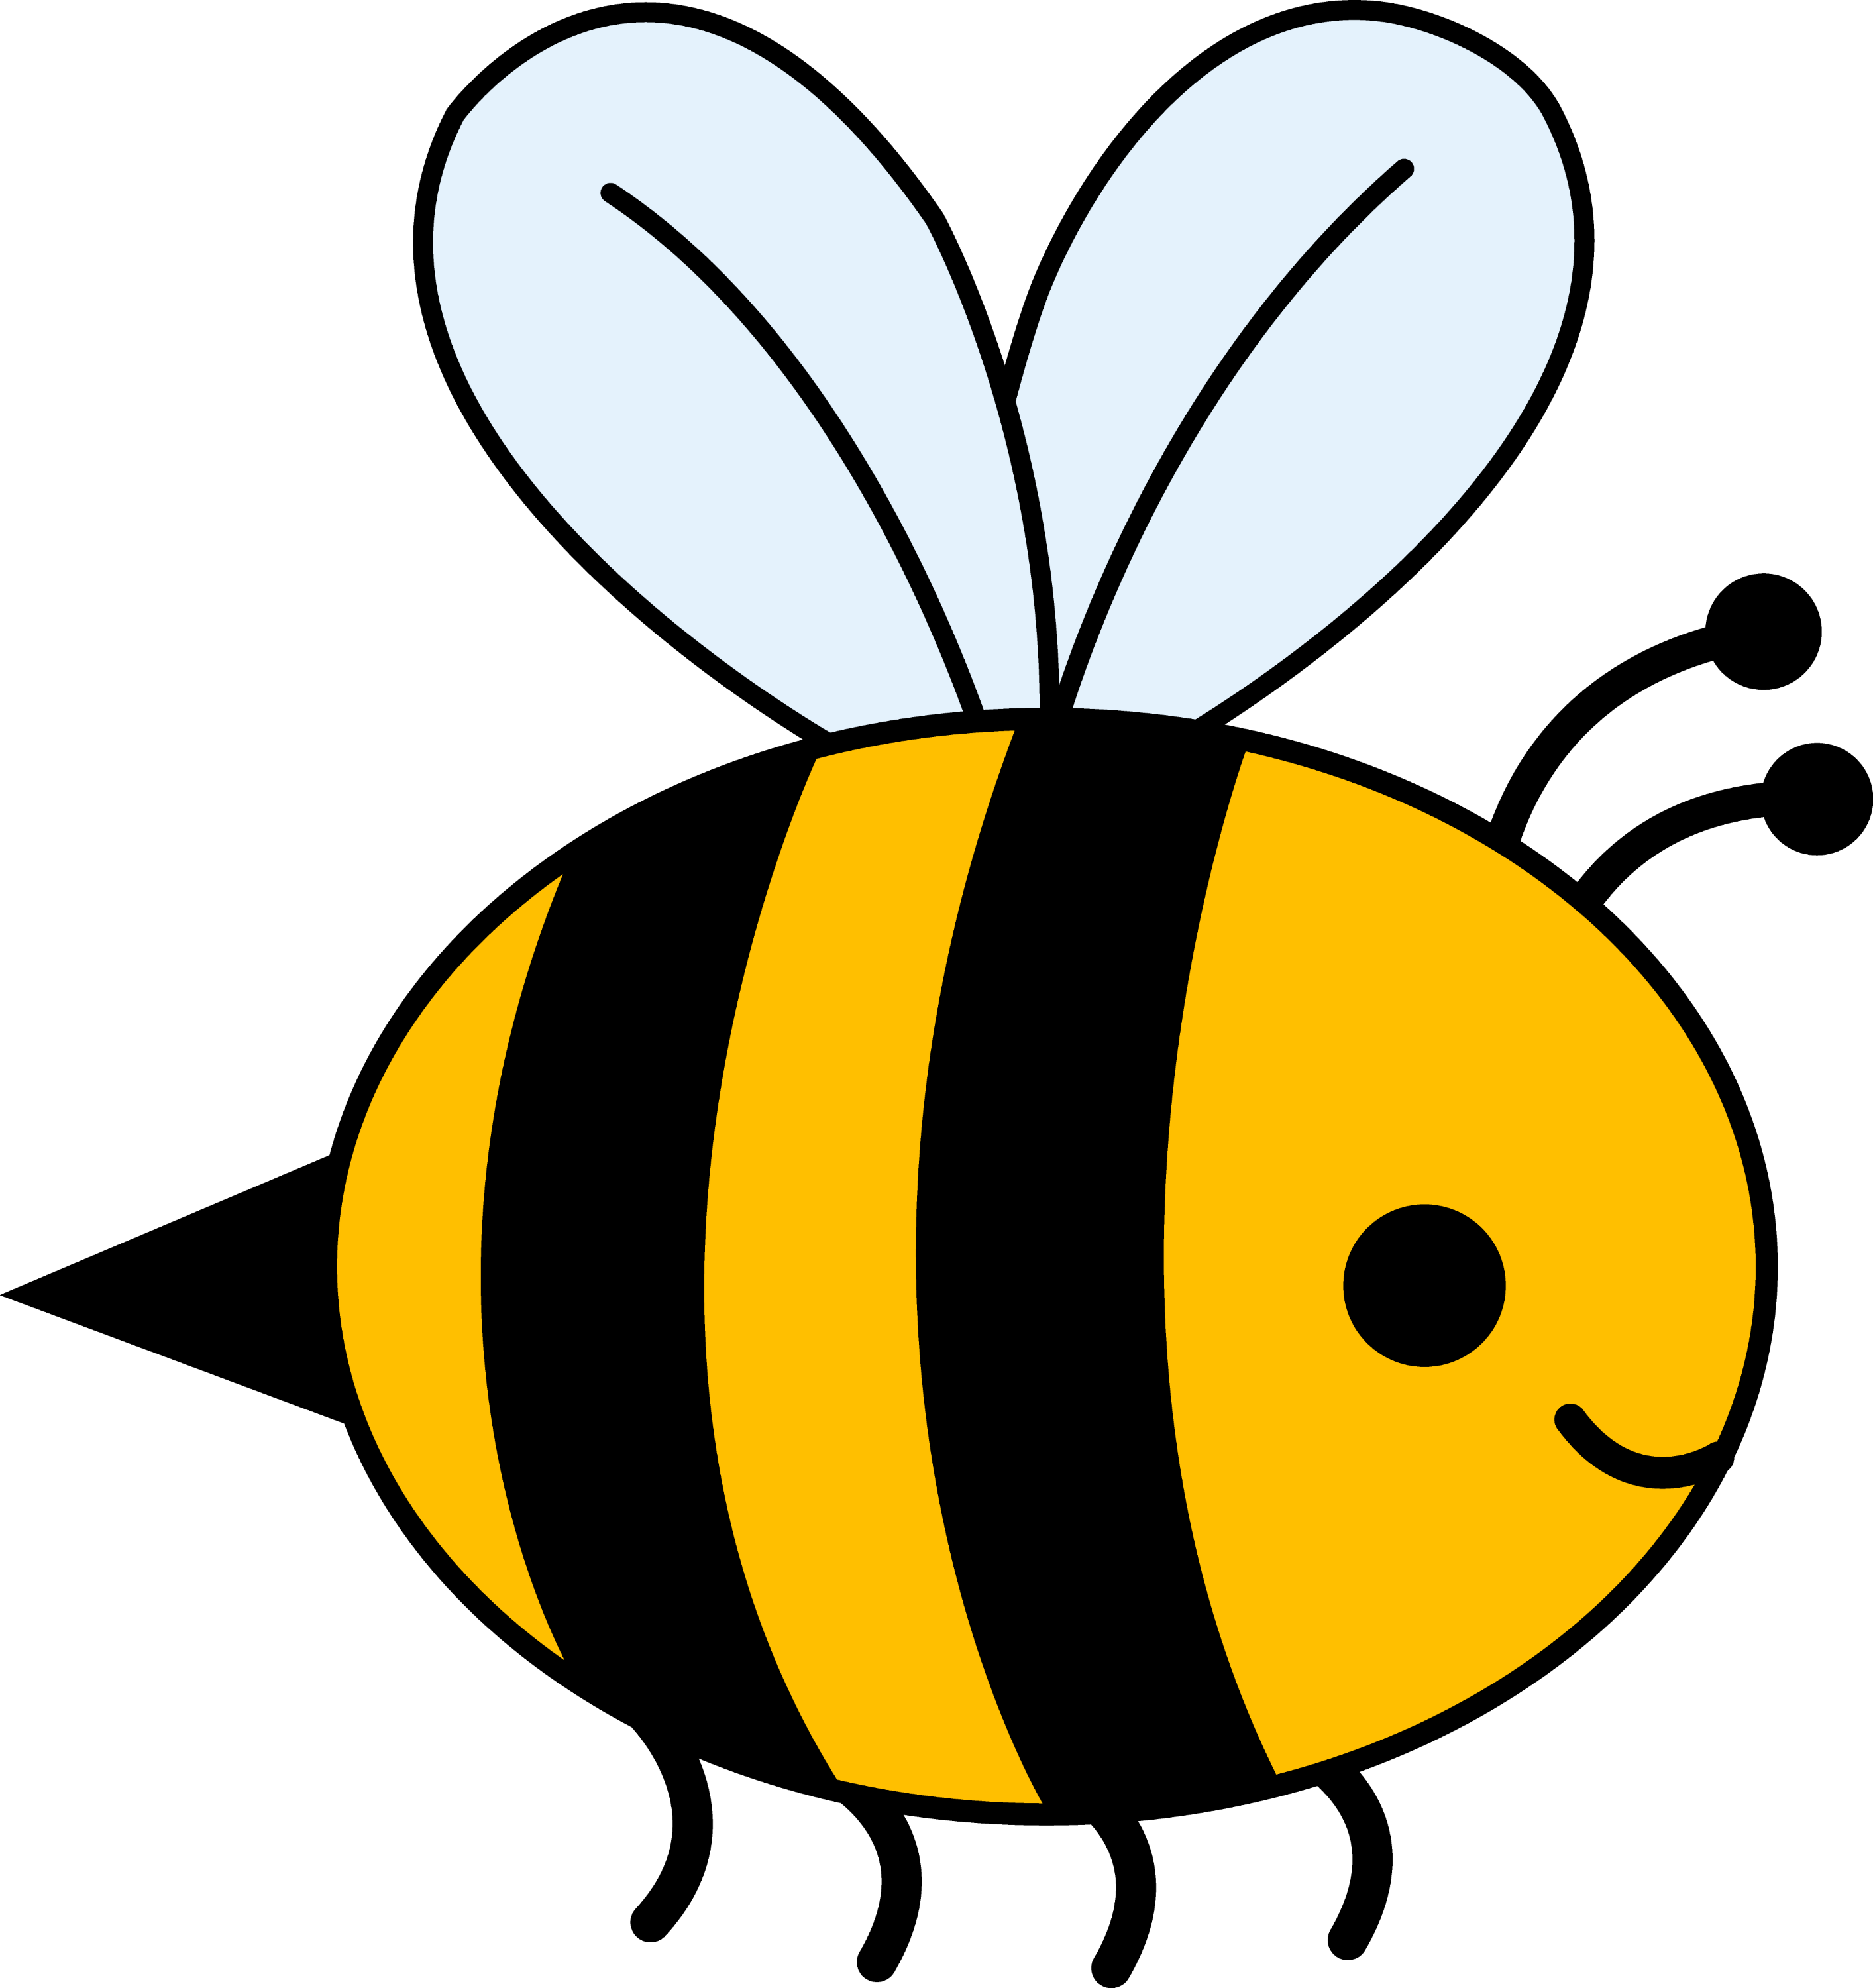 bee logos clip art - photo #46